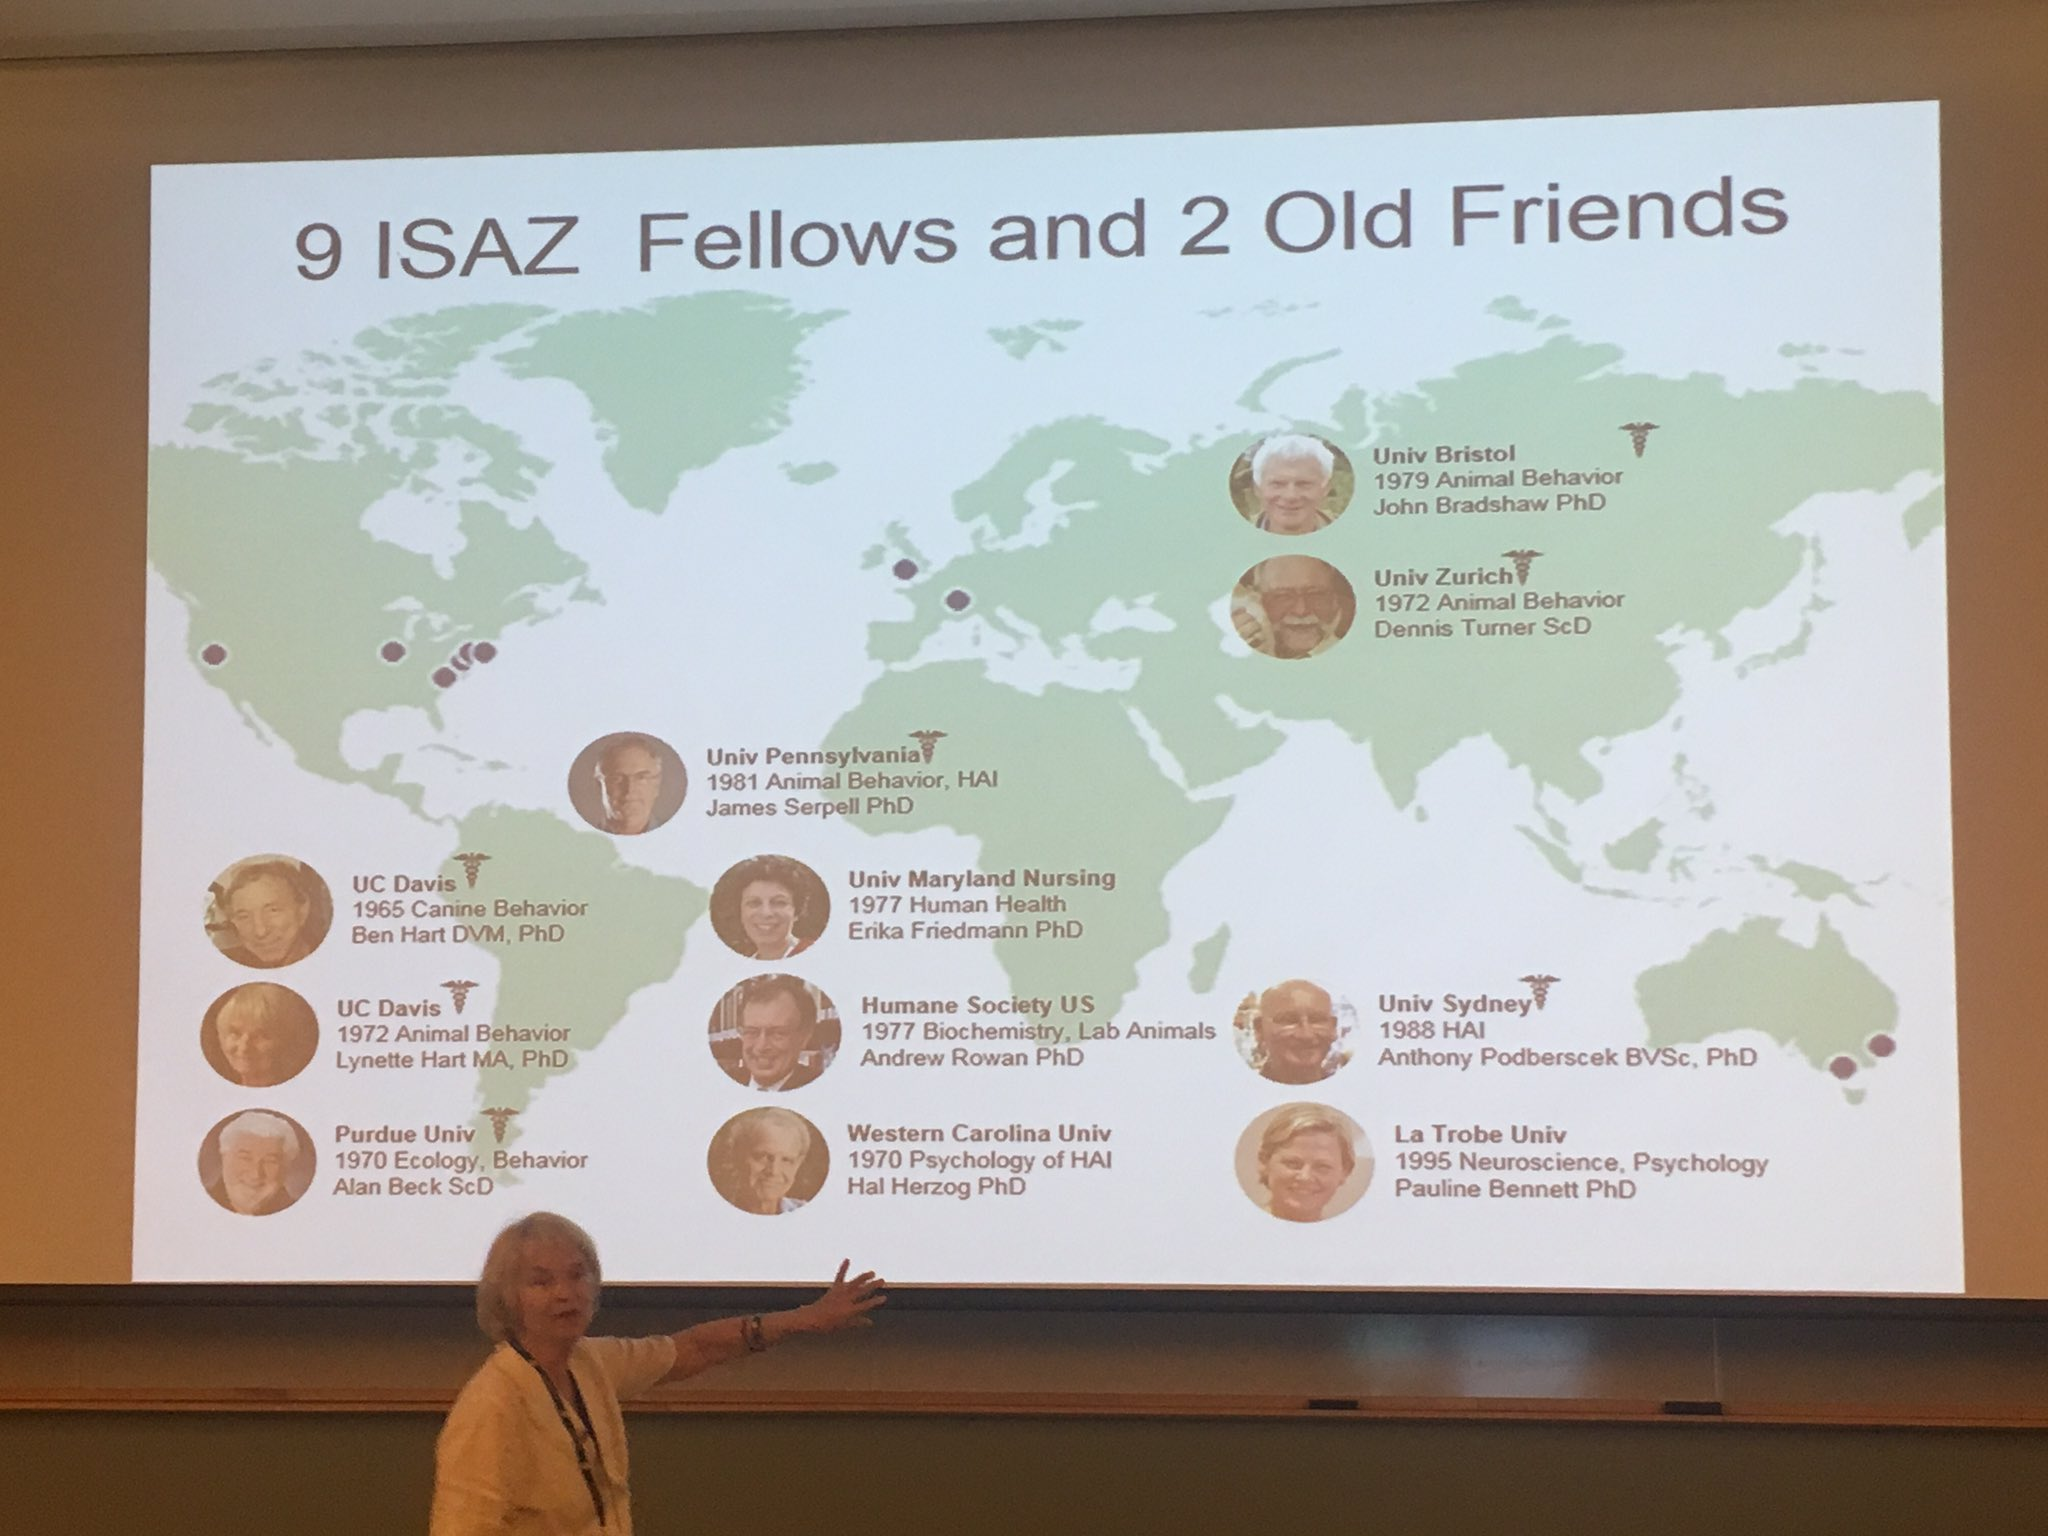 #ISAZ2017 Lynette Hart is giving her Distinguished Anthrozoologist Lecture. Passionate as always. https://t.co/A600g7Z1An